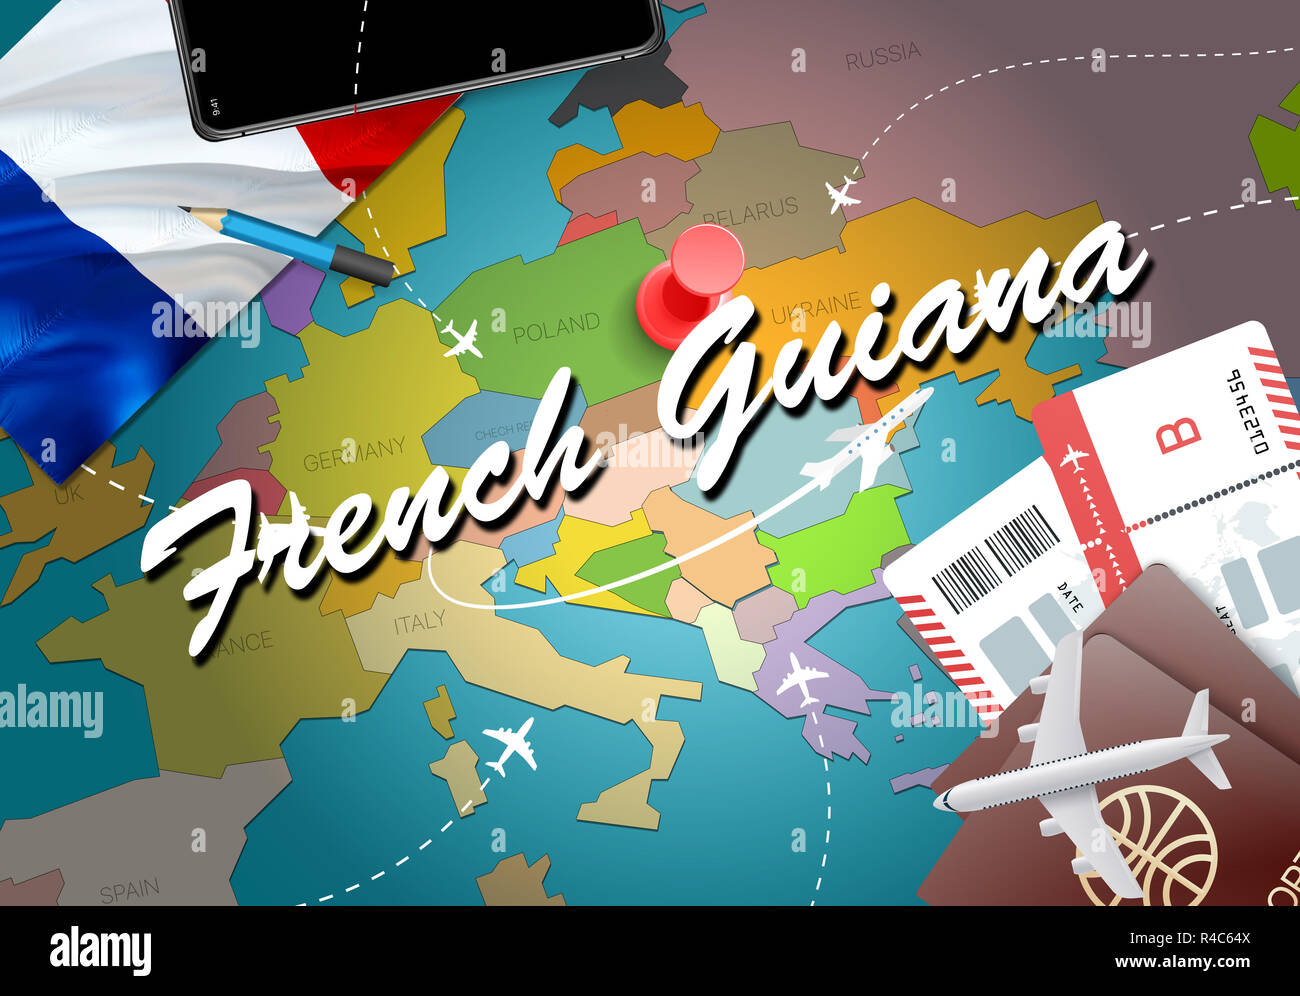 The Map Of France With The City.French Guiana City Travel And Tourism Destination Concept France